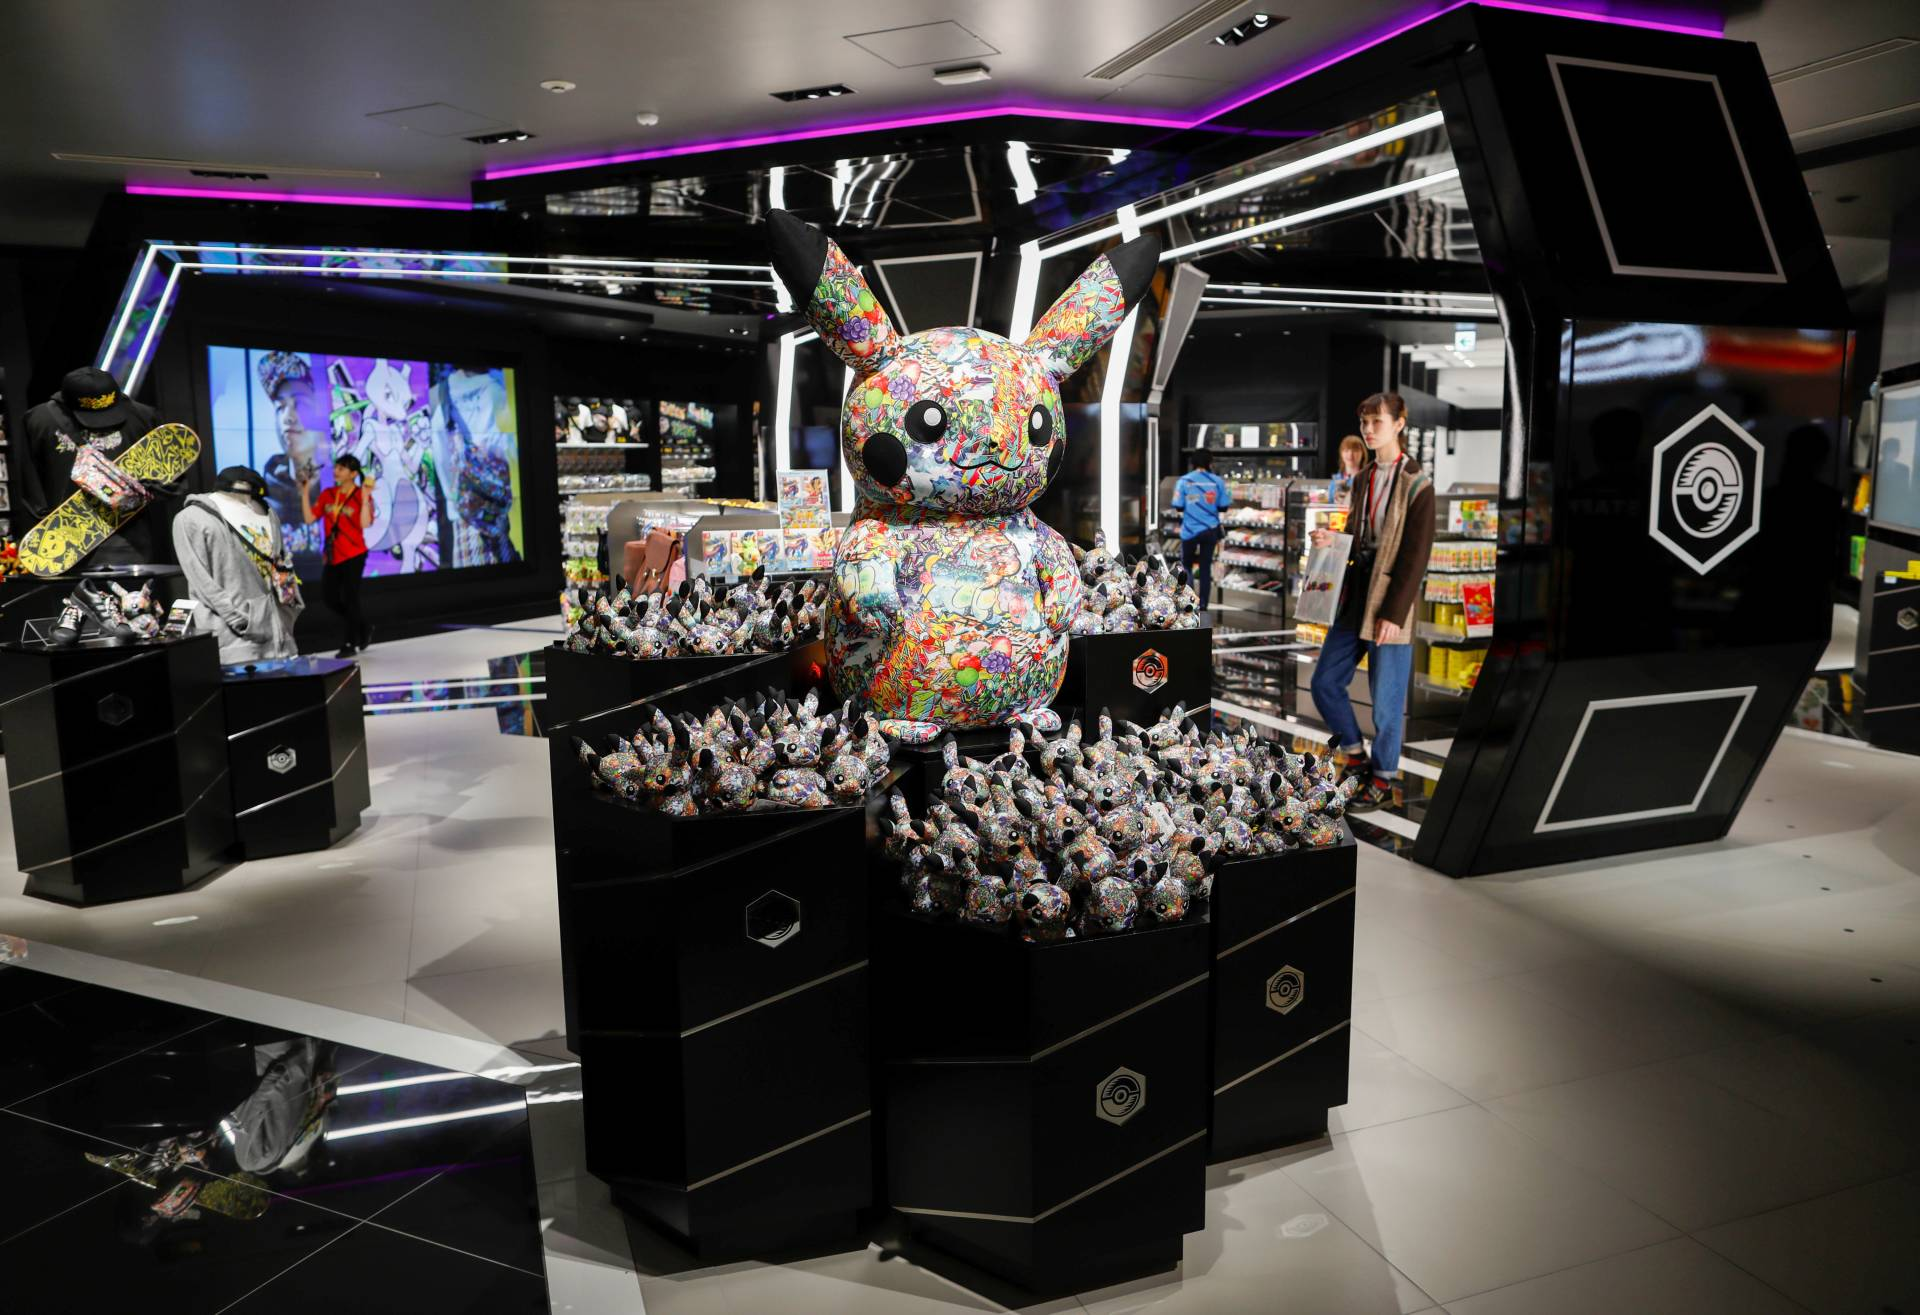 A general view of the Pokemon Center Shibuya at Shibuya Parco, a department store and shopping mall complex, during a press preview in Tokyo, Japan. — Reuters